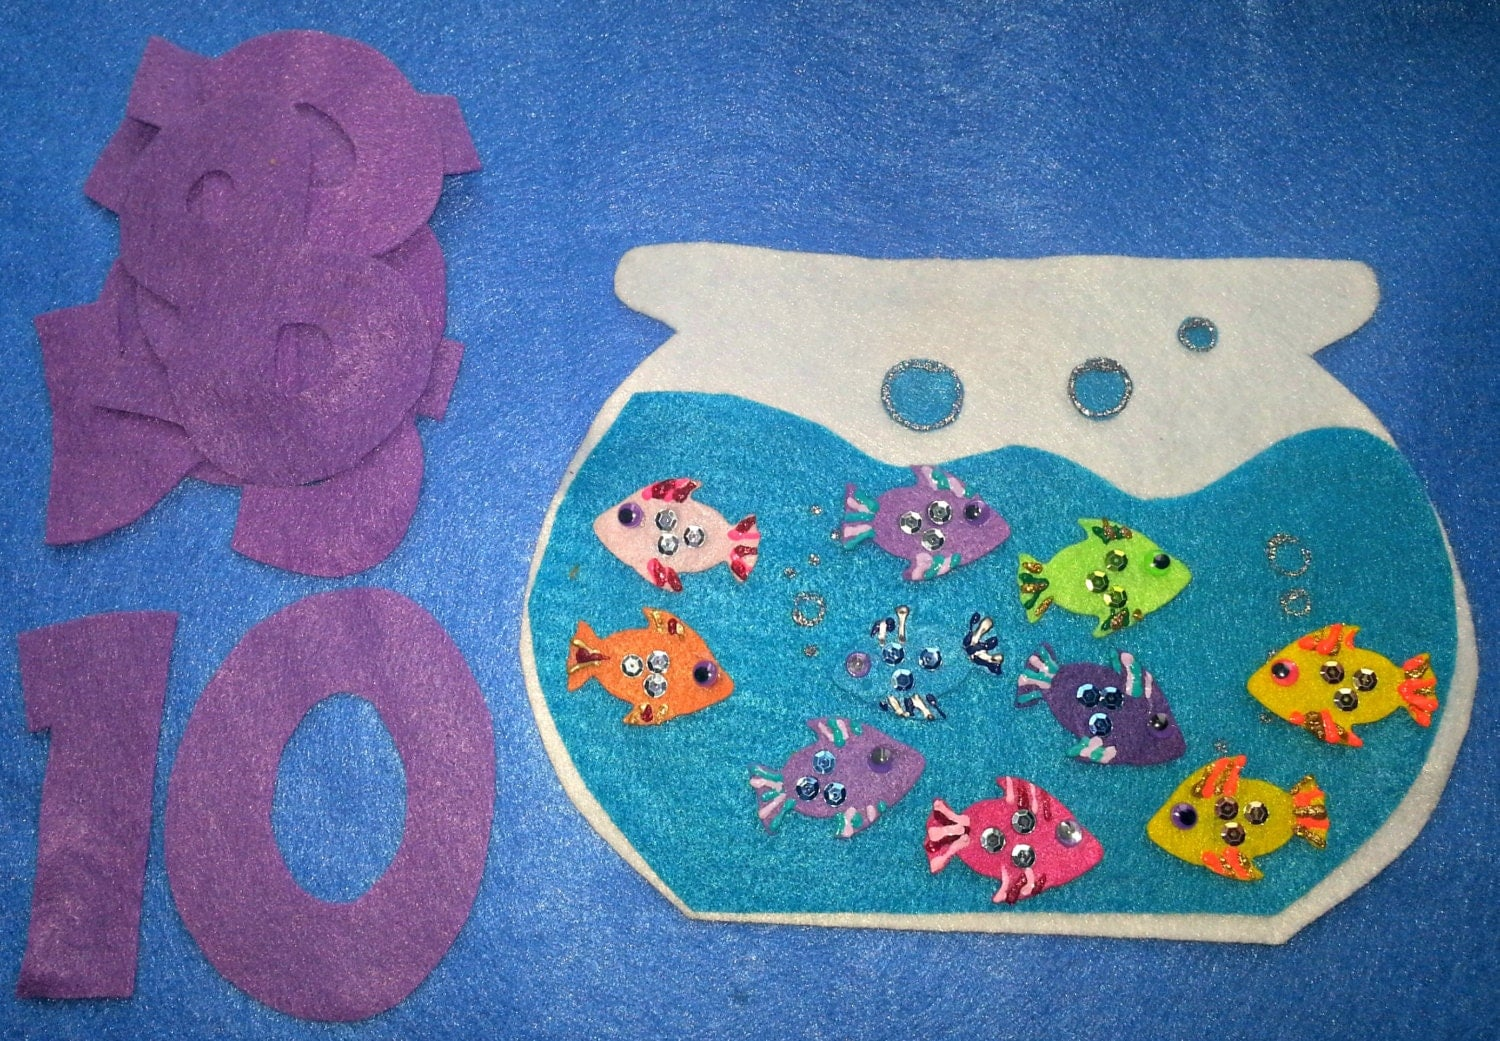 Felt Board Story Set Ten Little Fish In A Fish Bowl Counting